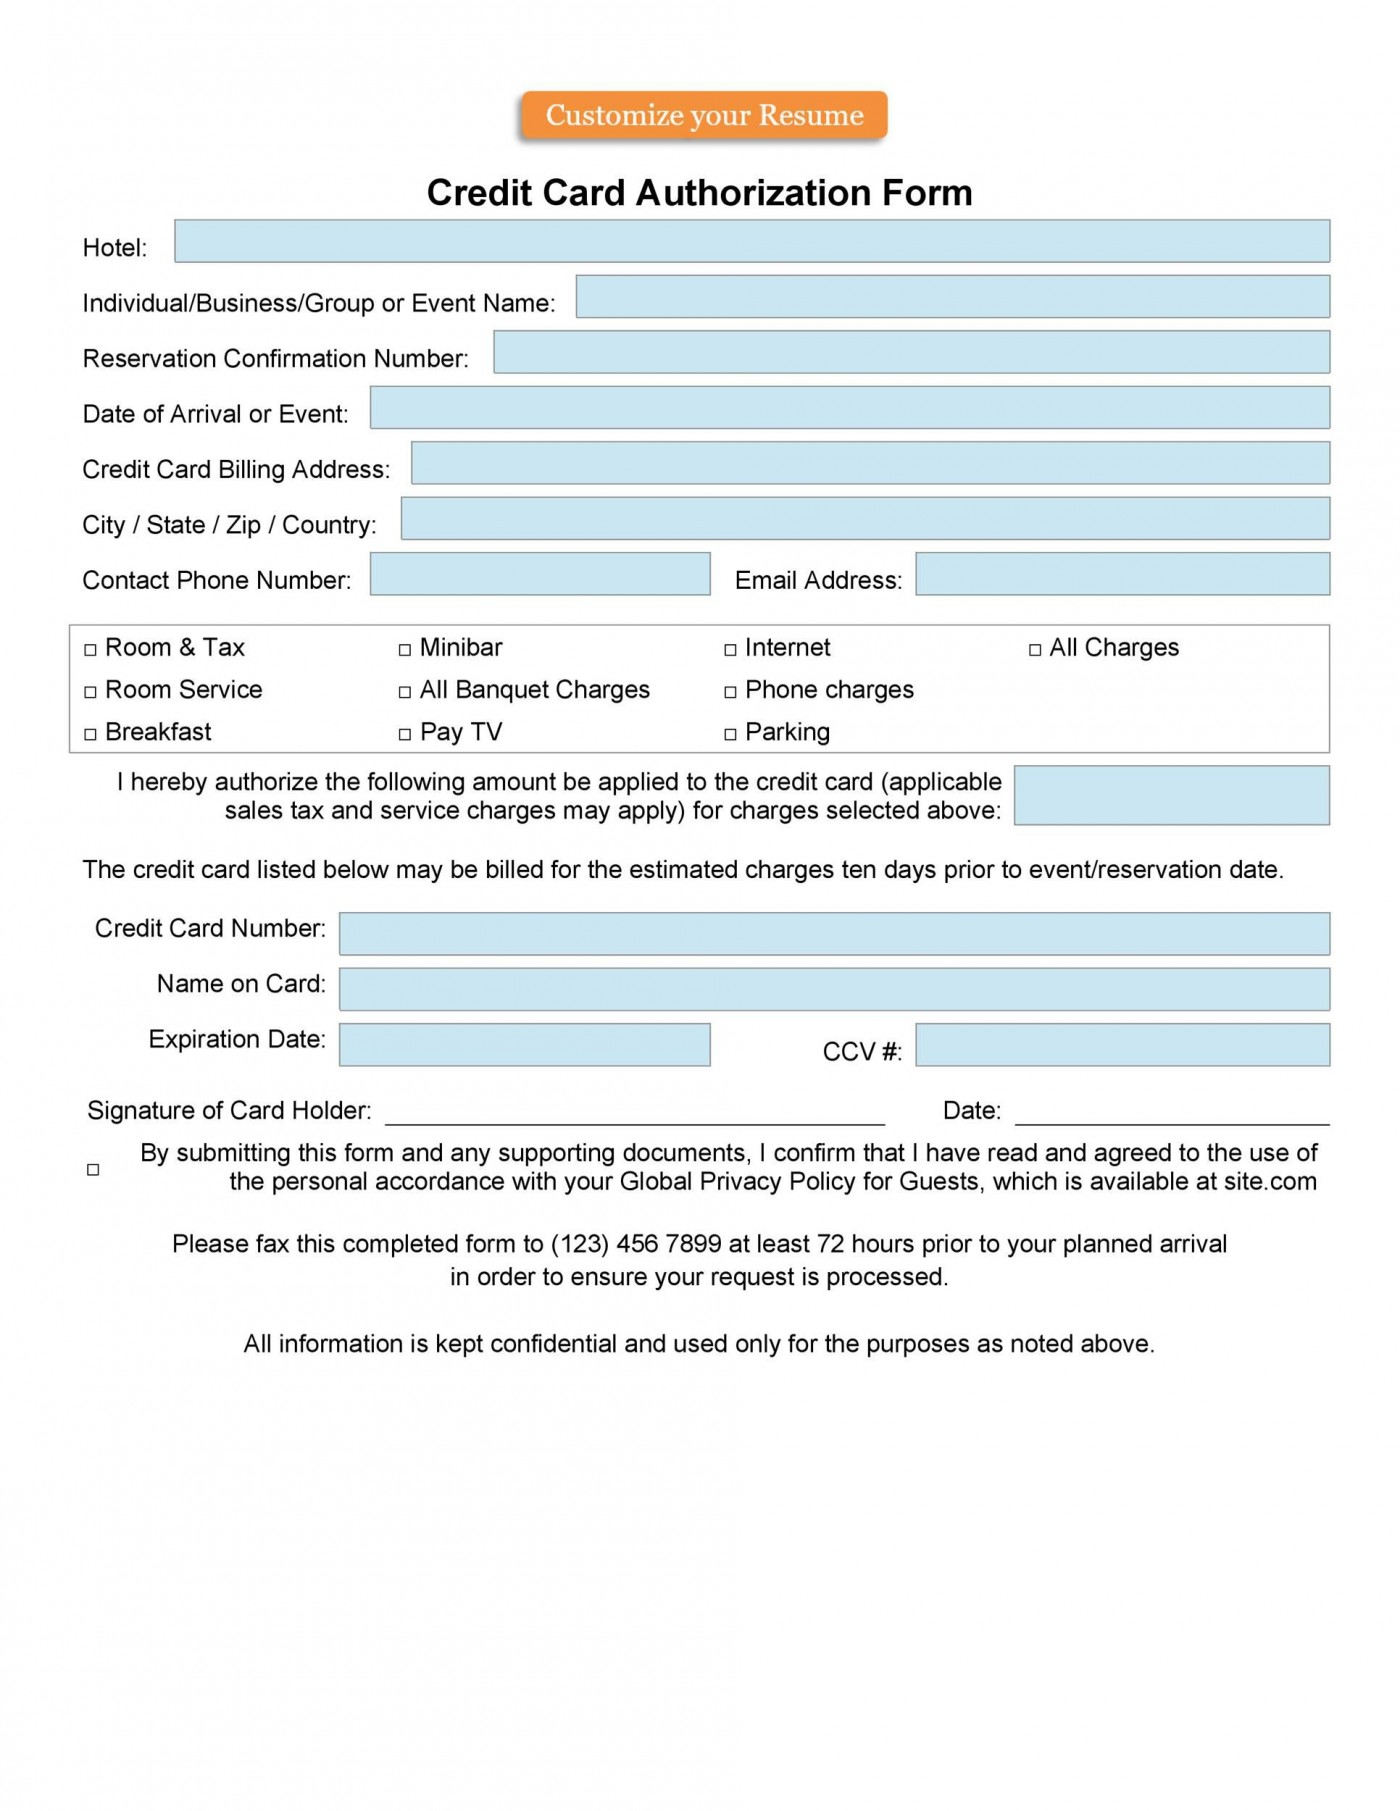 009 Impressive Credit Card Usage Request Form Template Example 1400